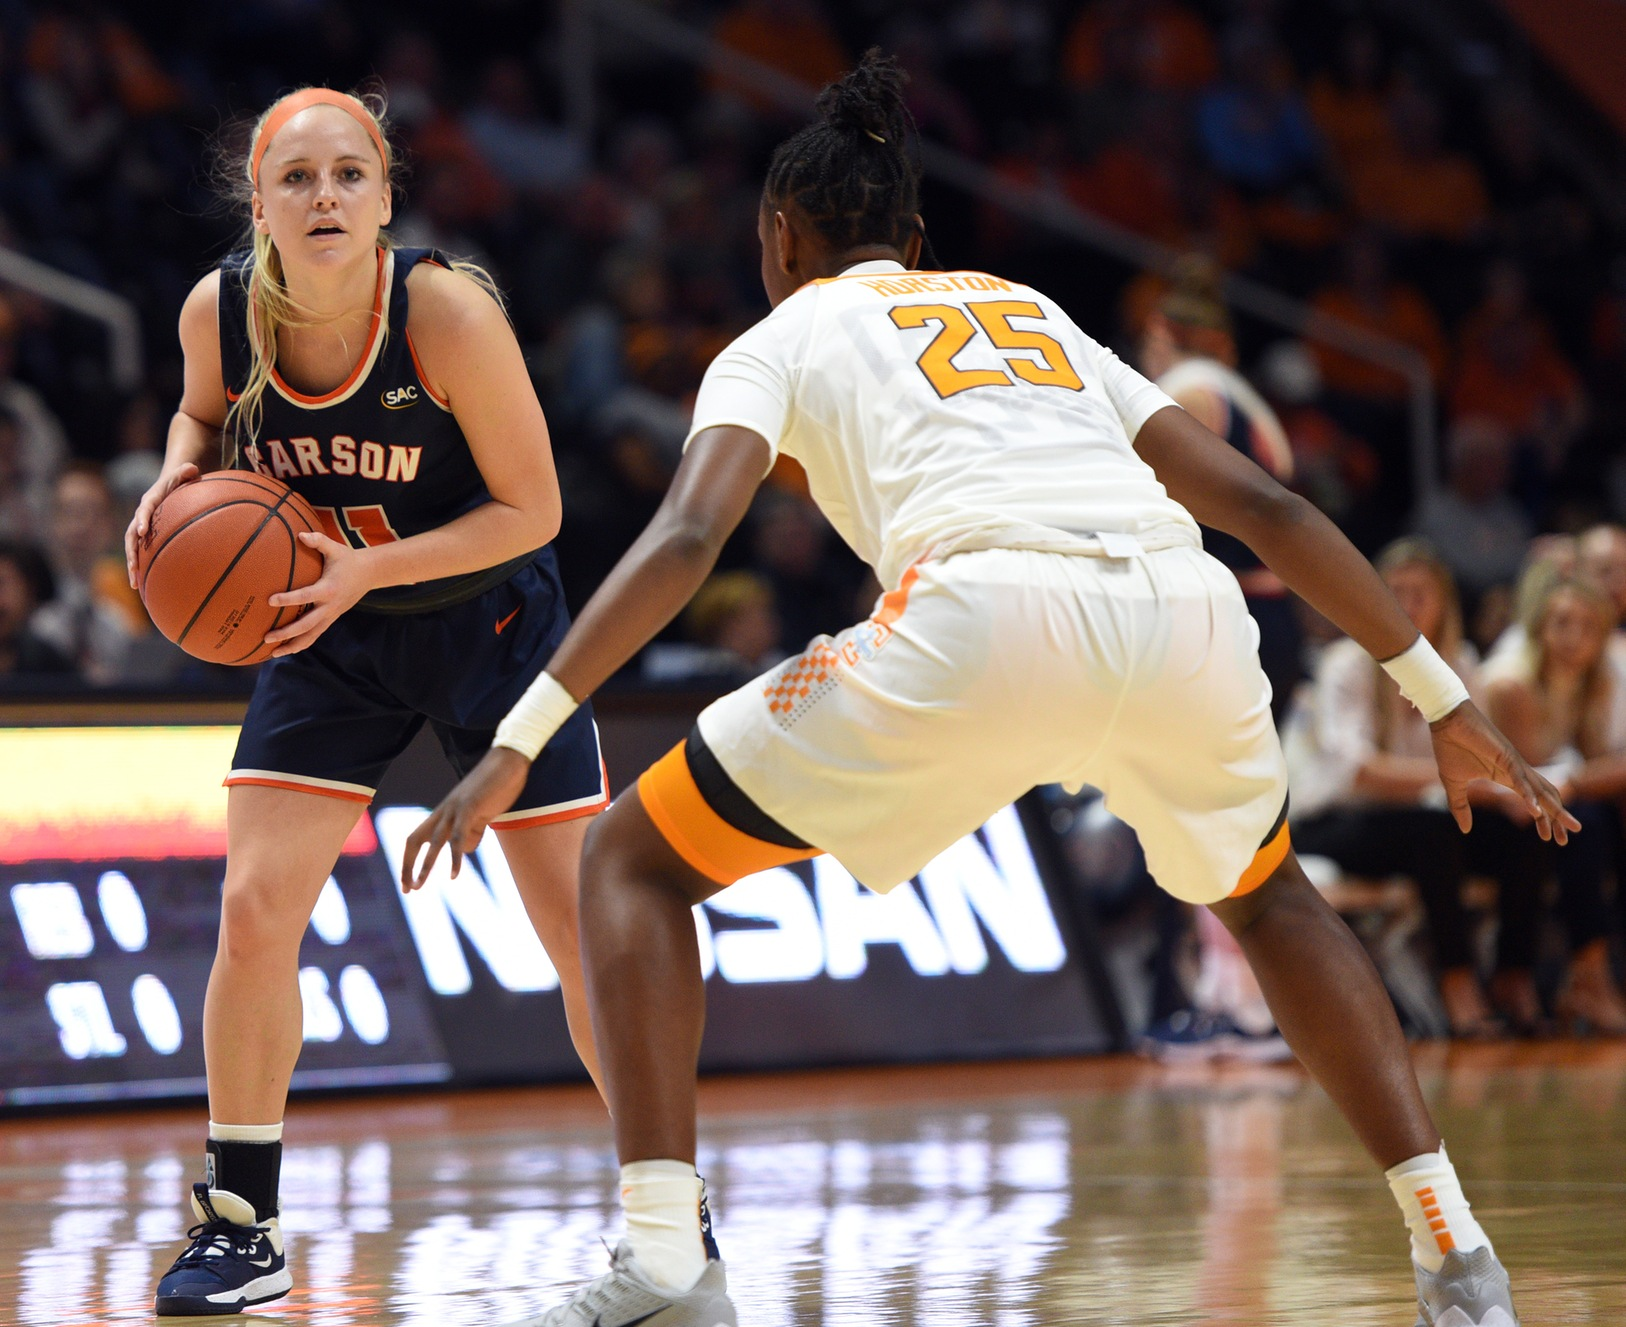 Lady Eagles hang tough with Lady Vols on Rocky Top